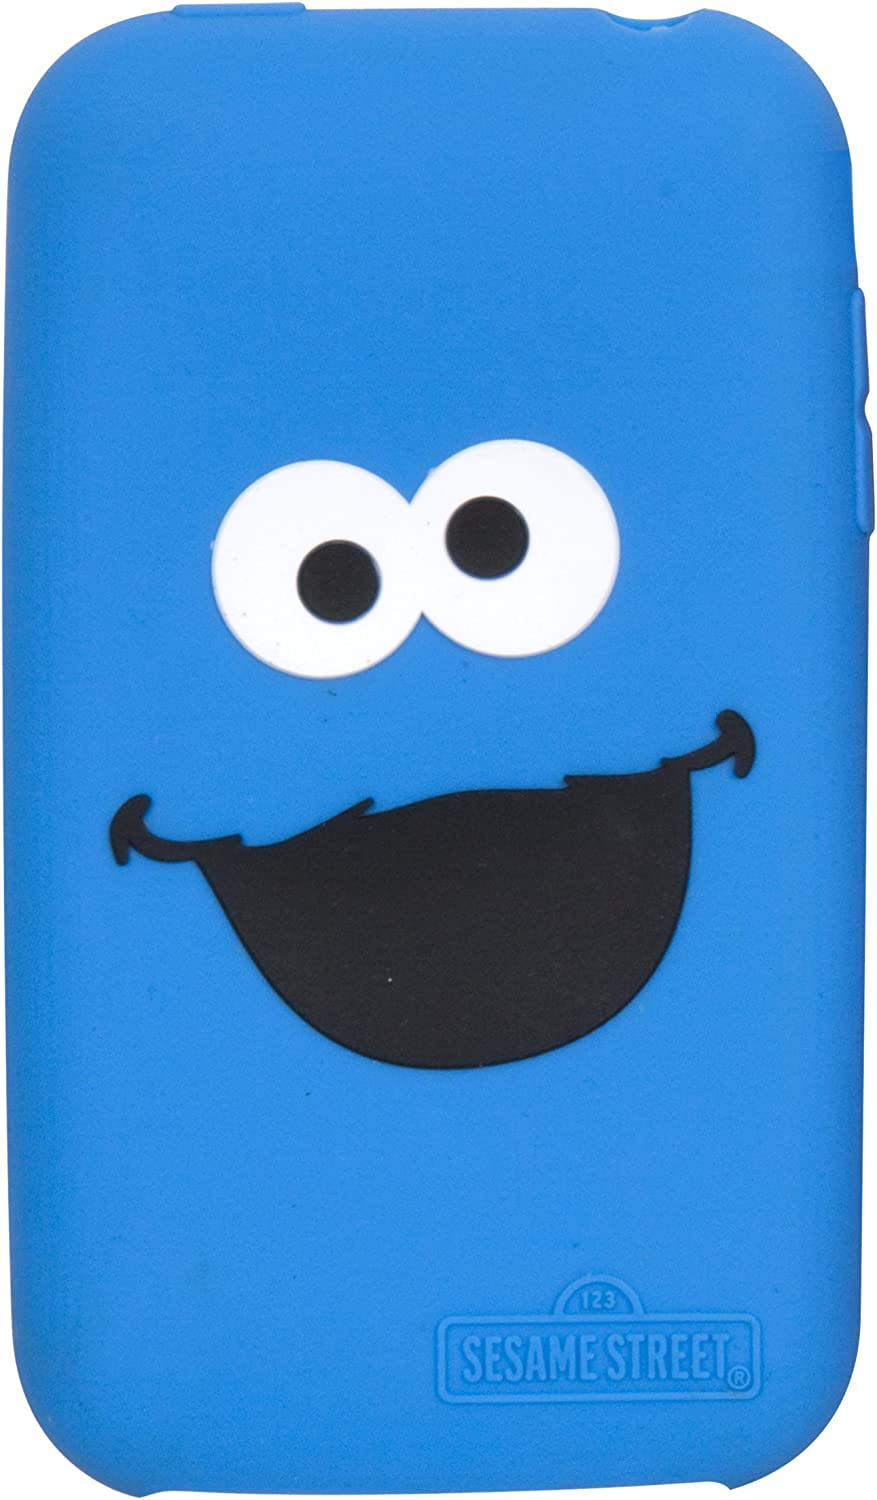 i.Sound Sesame Street Cookie Monster Silicone Sleeve for iPod touch-Blue